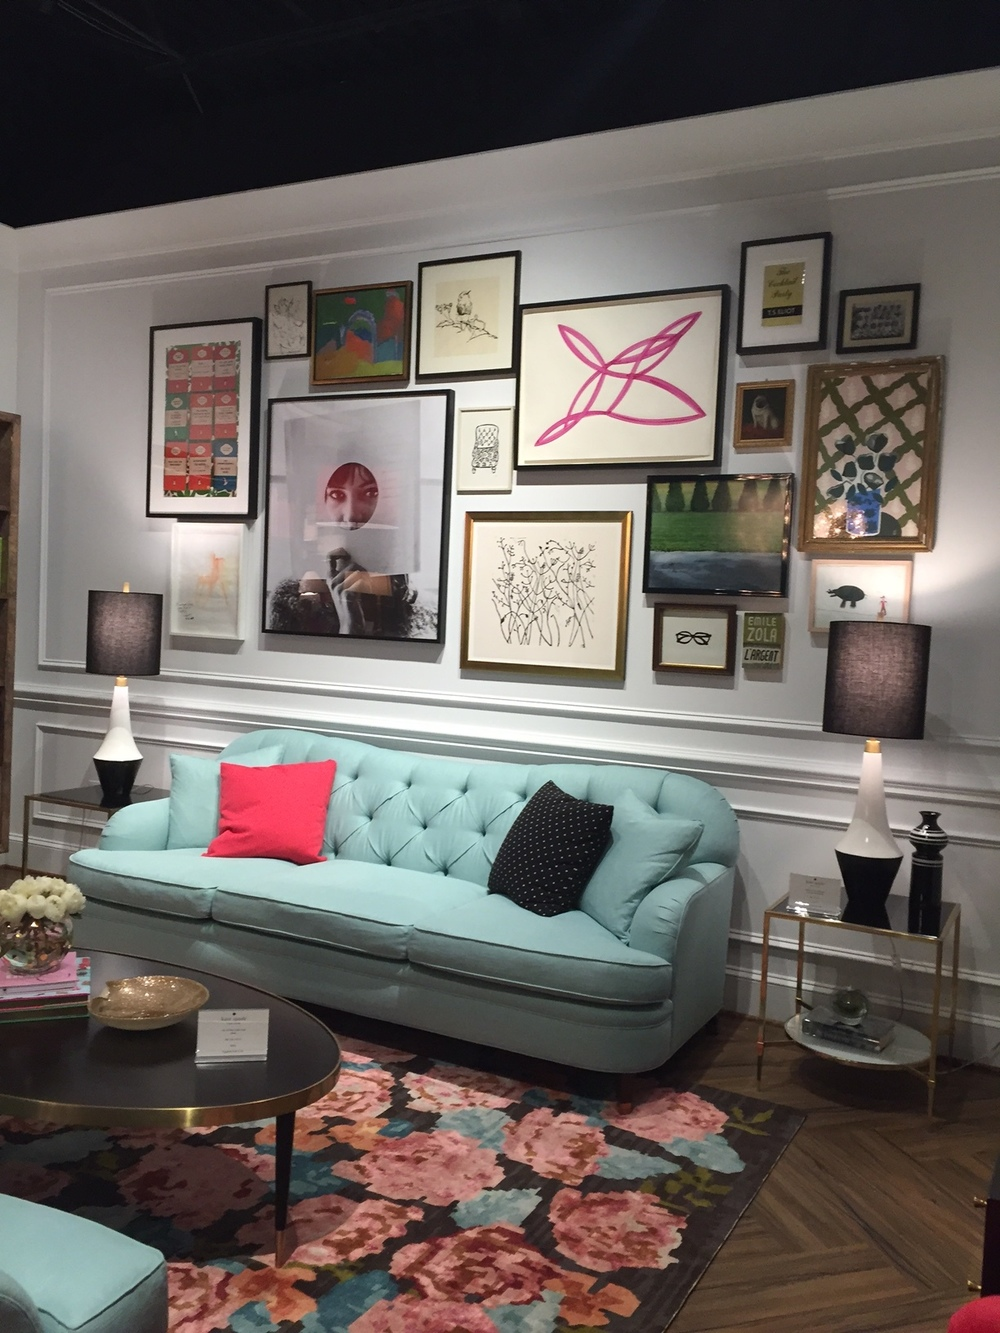 ... Kate Spade New York Made A Big Debut, Launching Furniture At High Point  Market. It Was The Talk Of The Town, As Editors, Buyers And Interior  Designers ...